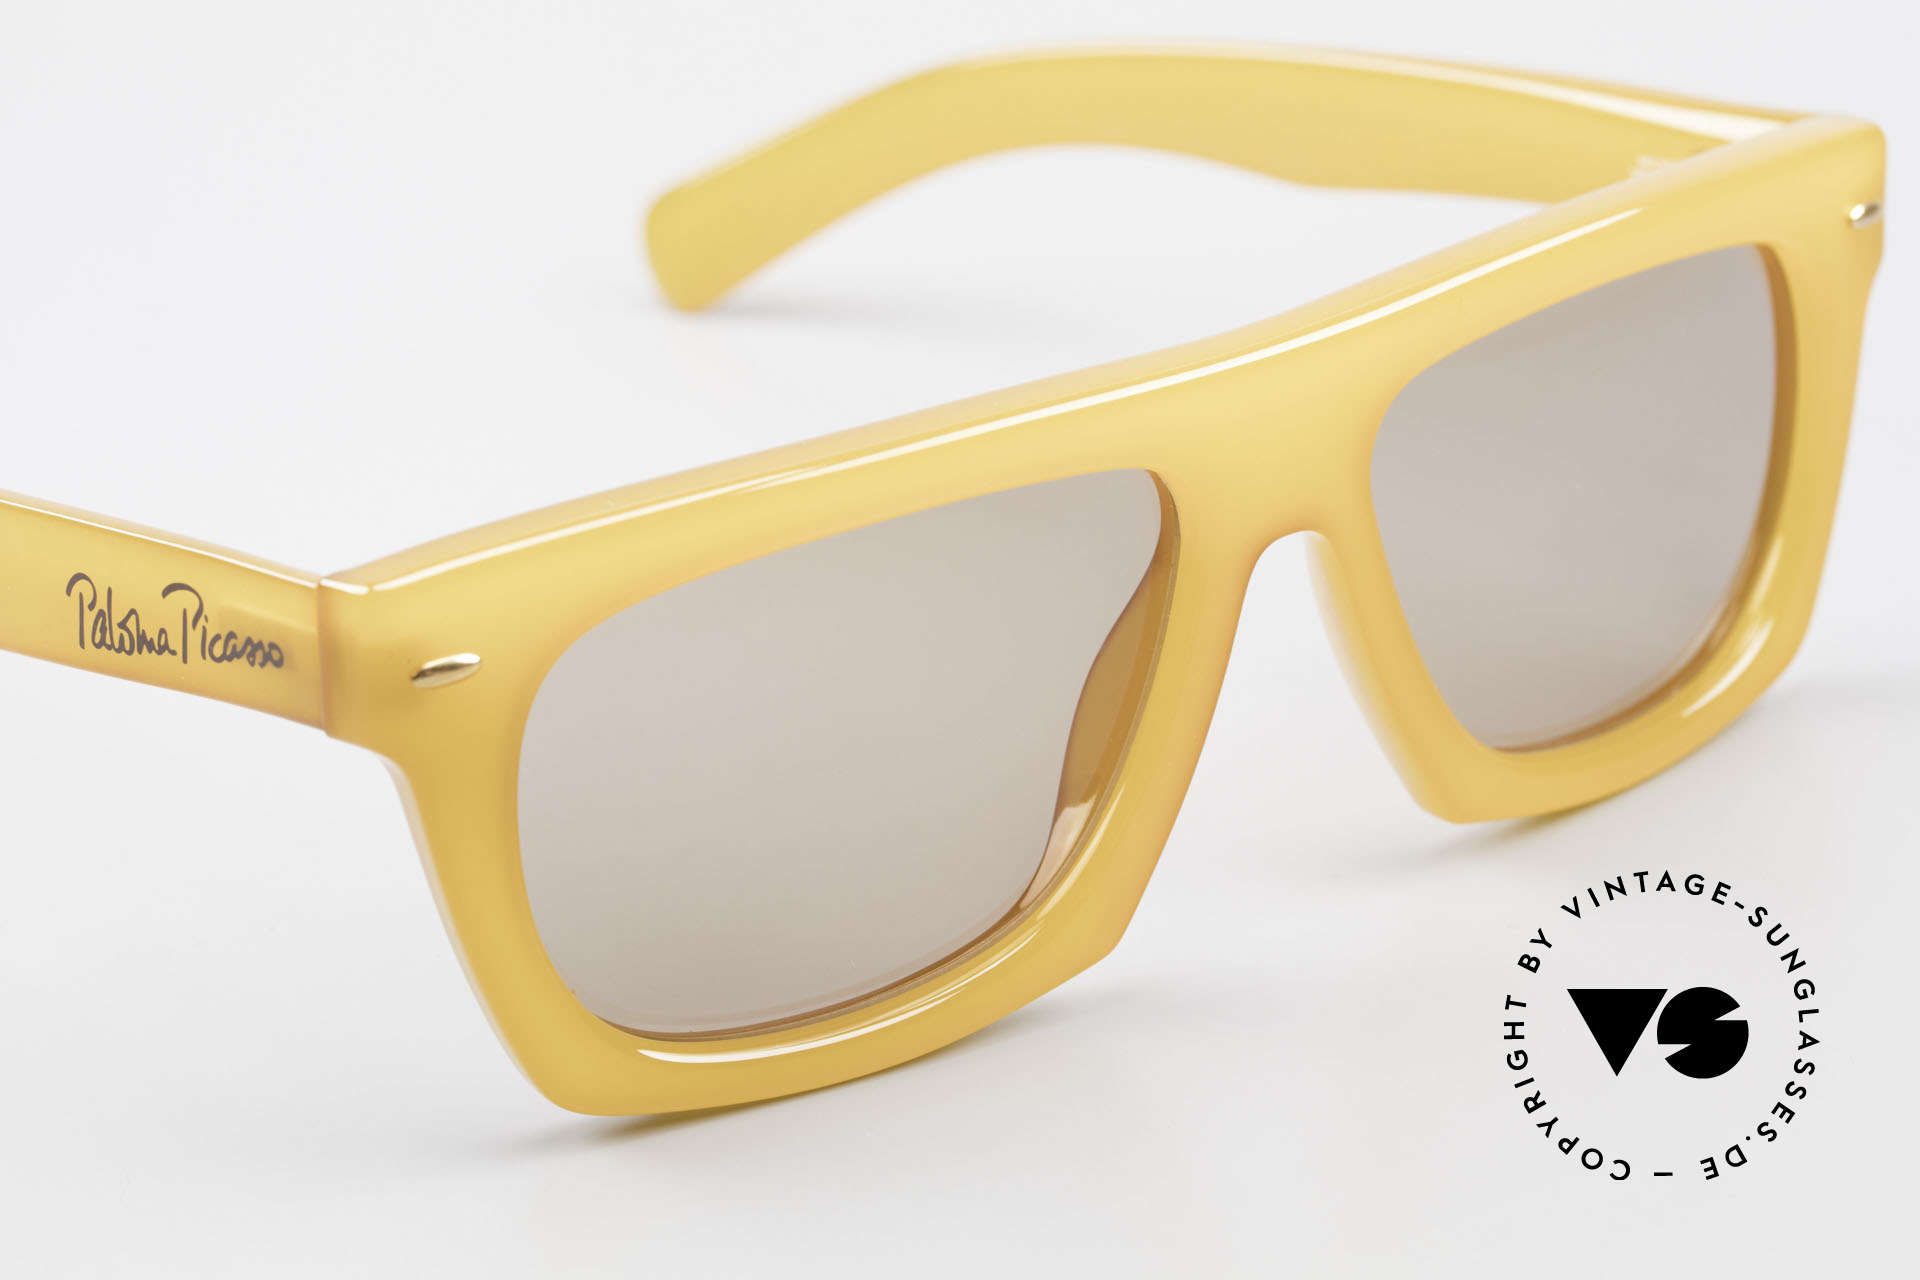 Paloma Picasso 1460 1990's Viennaline Collection, never worn (like all our rare vintage PP sunglasses), Made for Men and Women